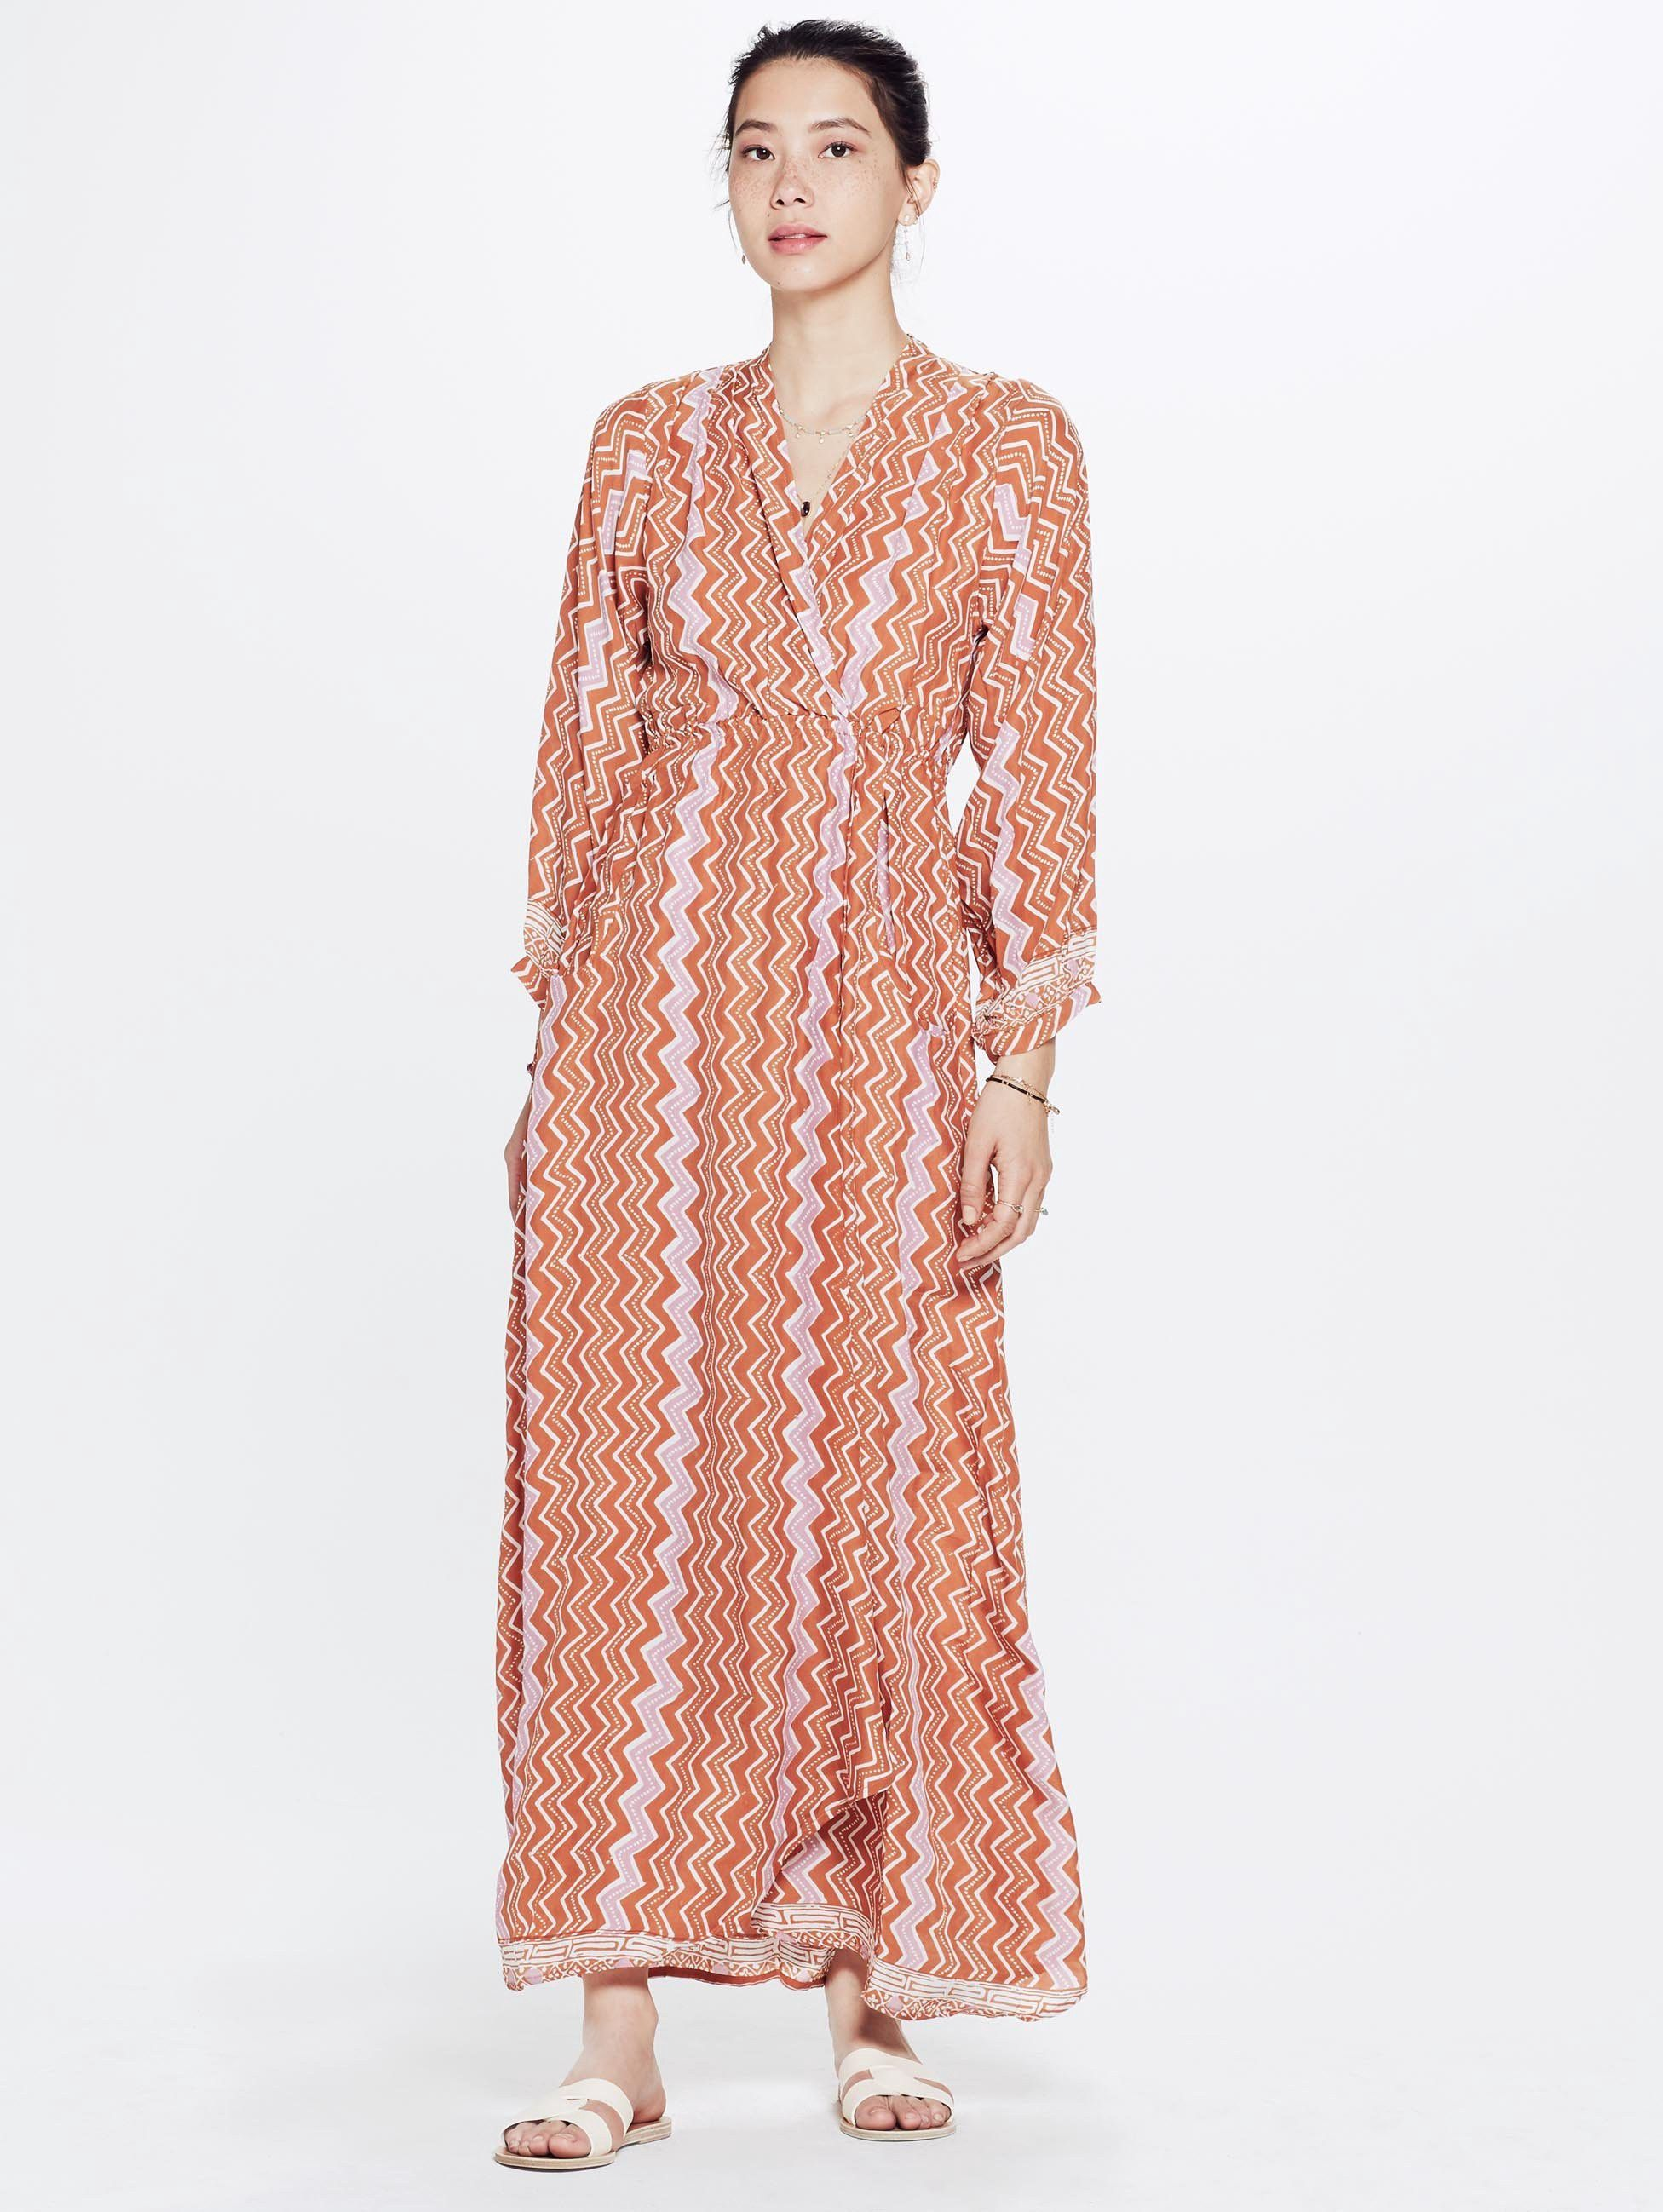 Natalie martin nico long sleeve maxi dress new rust by mother